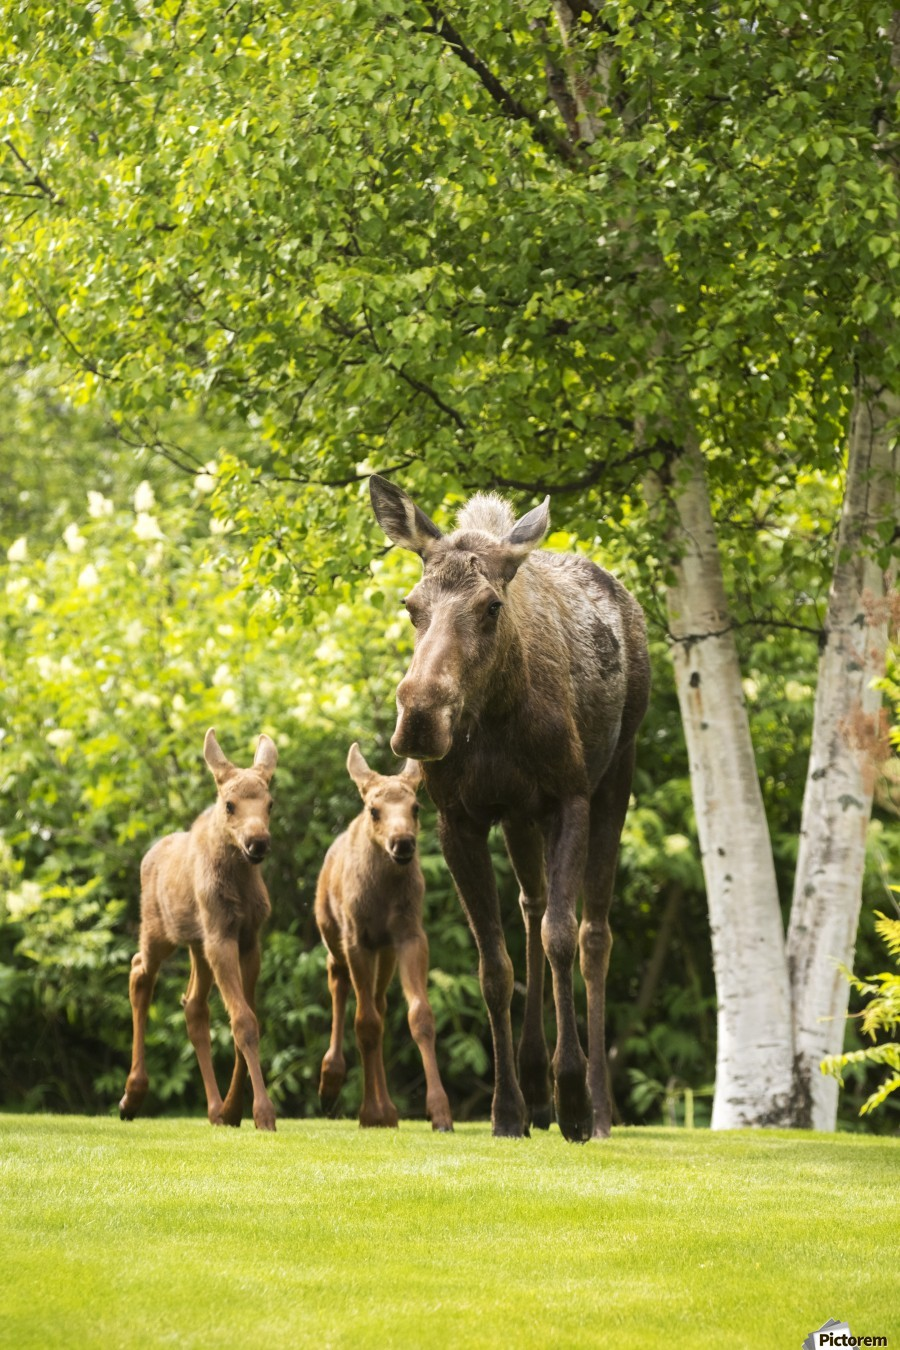 A cow moose (alces alces) with her calves on green grass with lush green foliage; Anchorage, Alaska, United States of America  Print